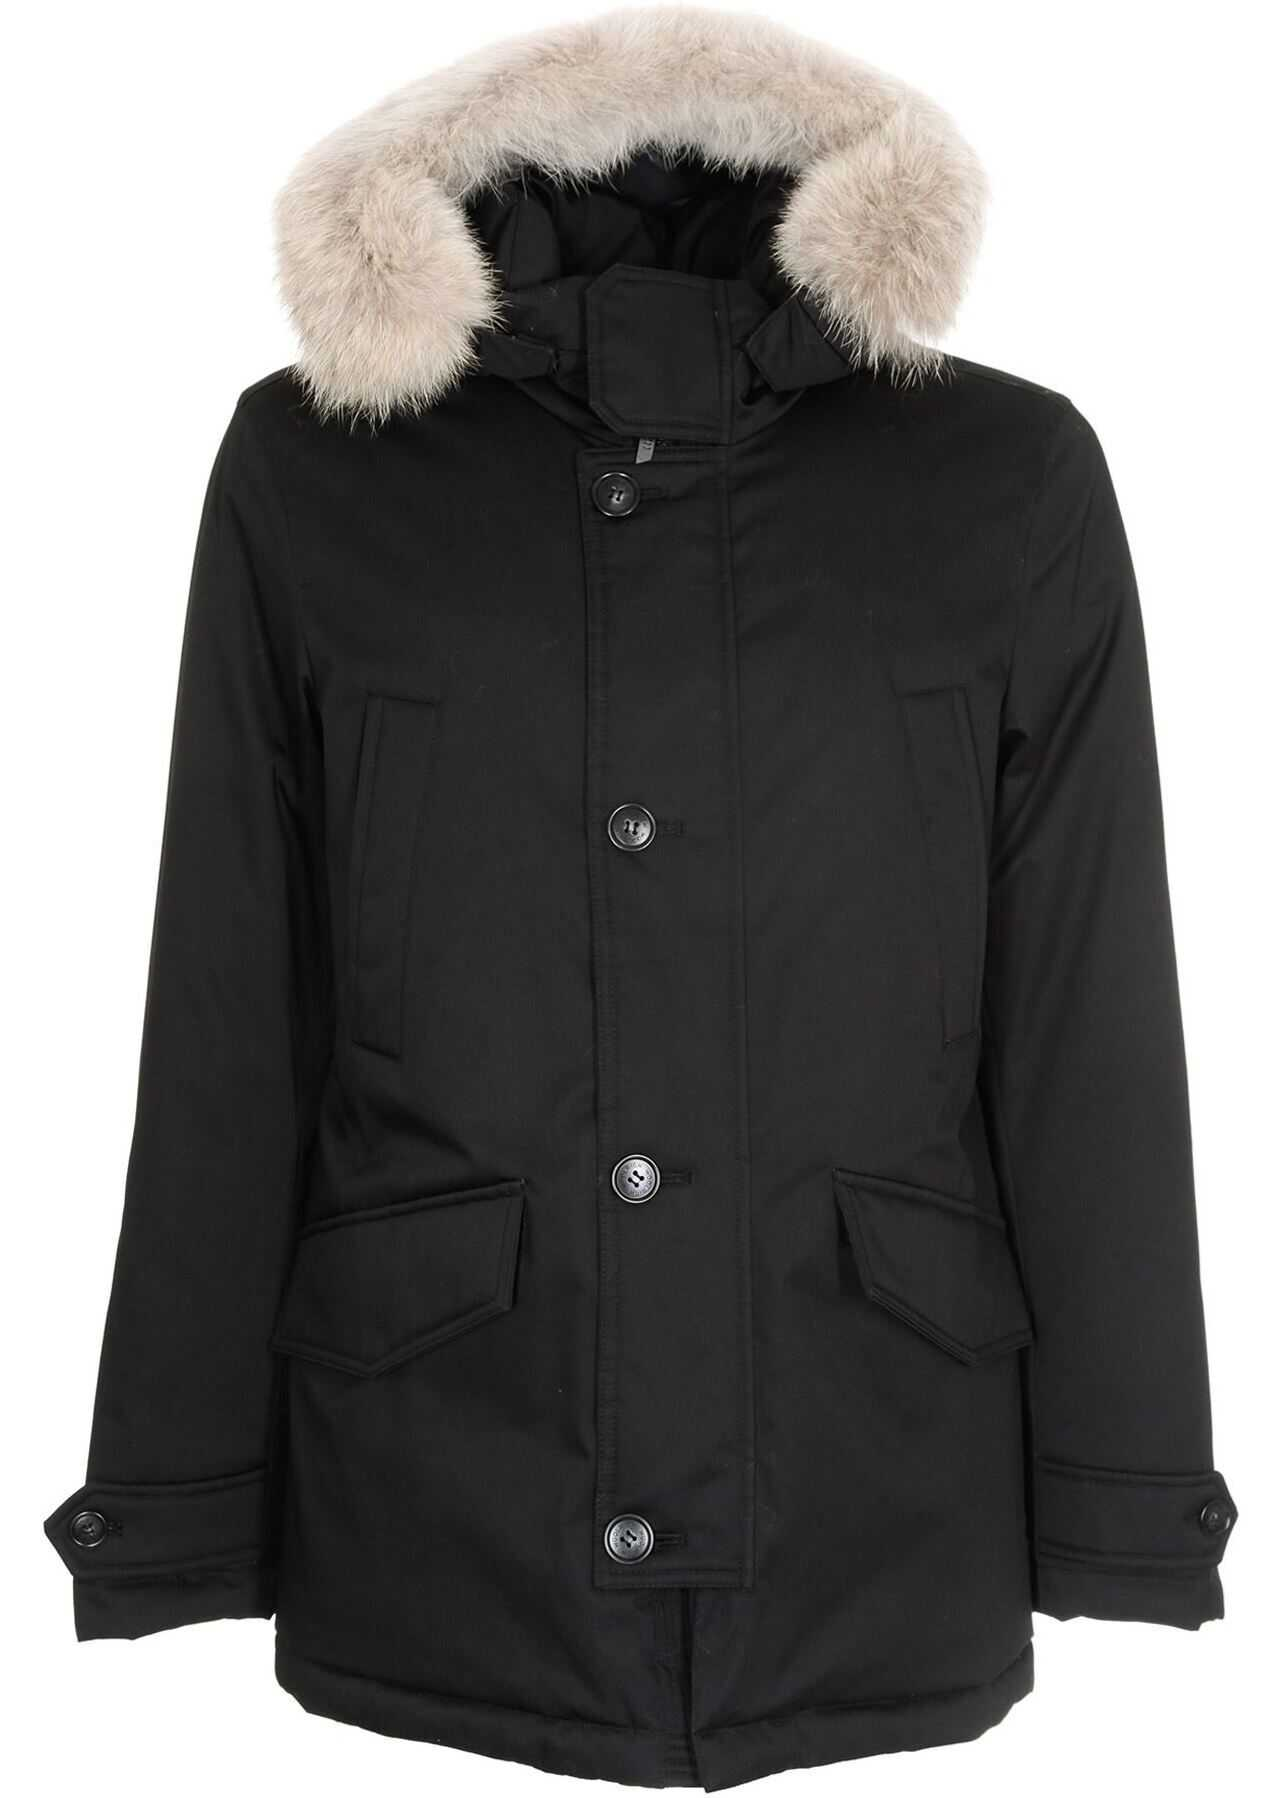 Woolrich Laminated Parka Hc In Black Black imagine